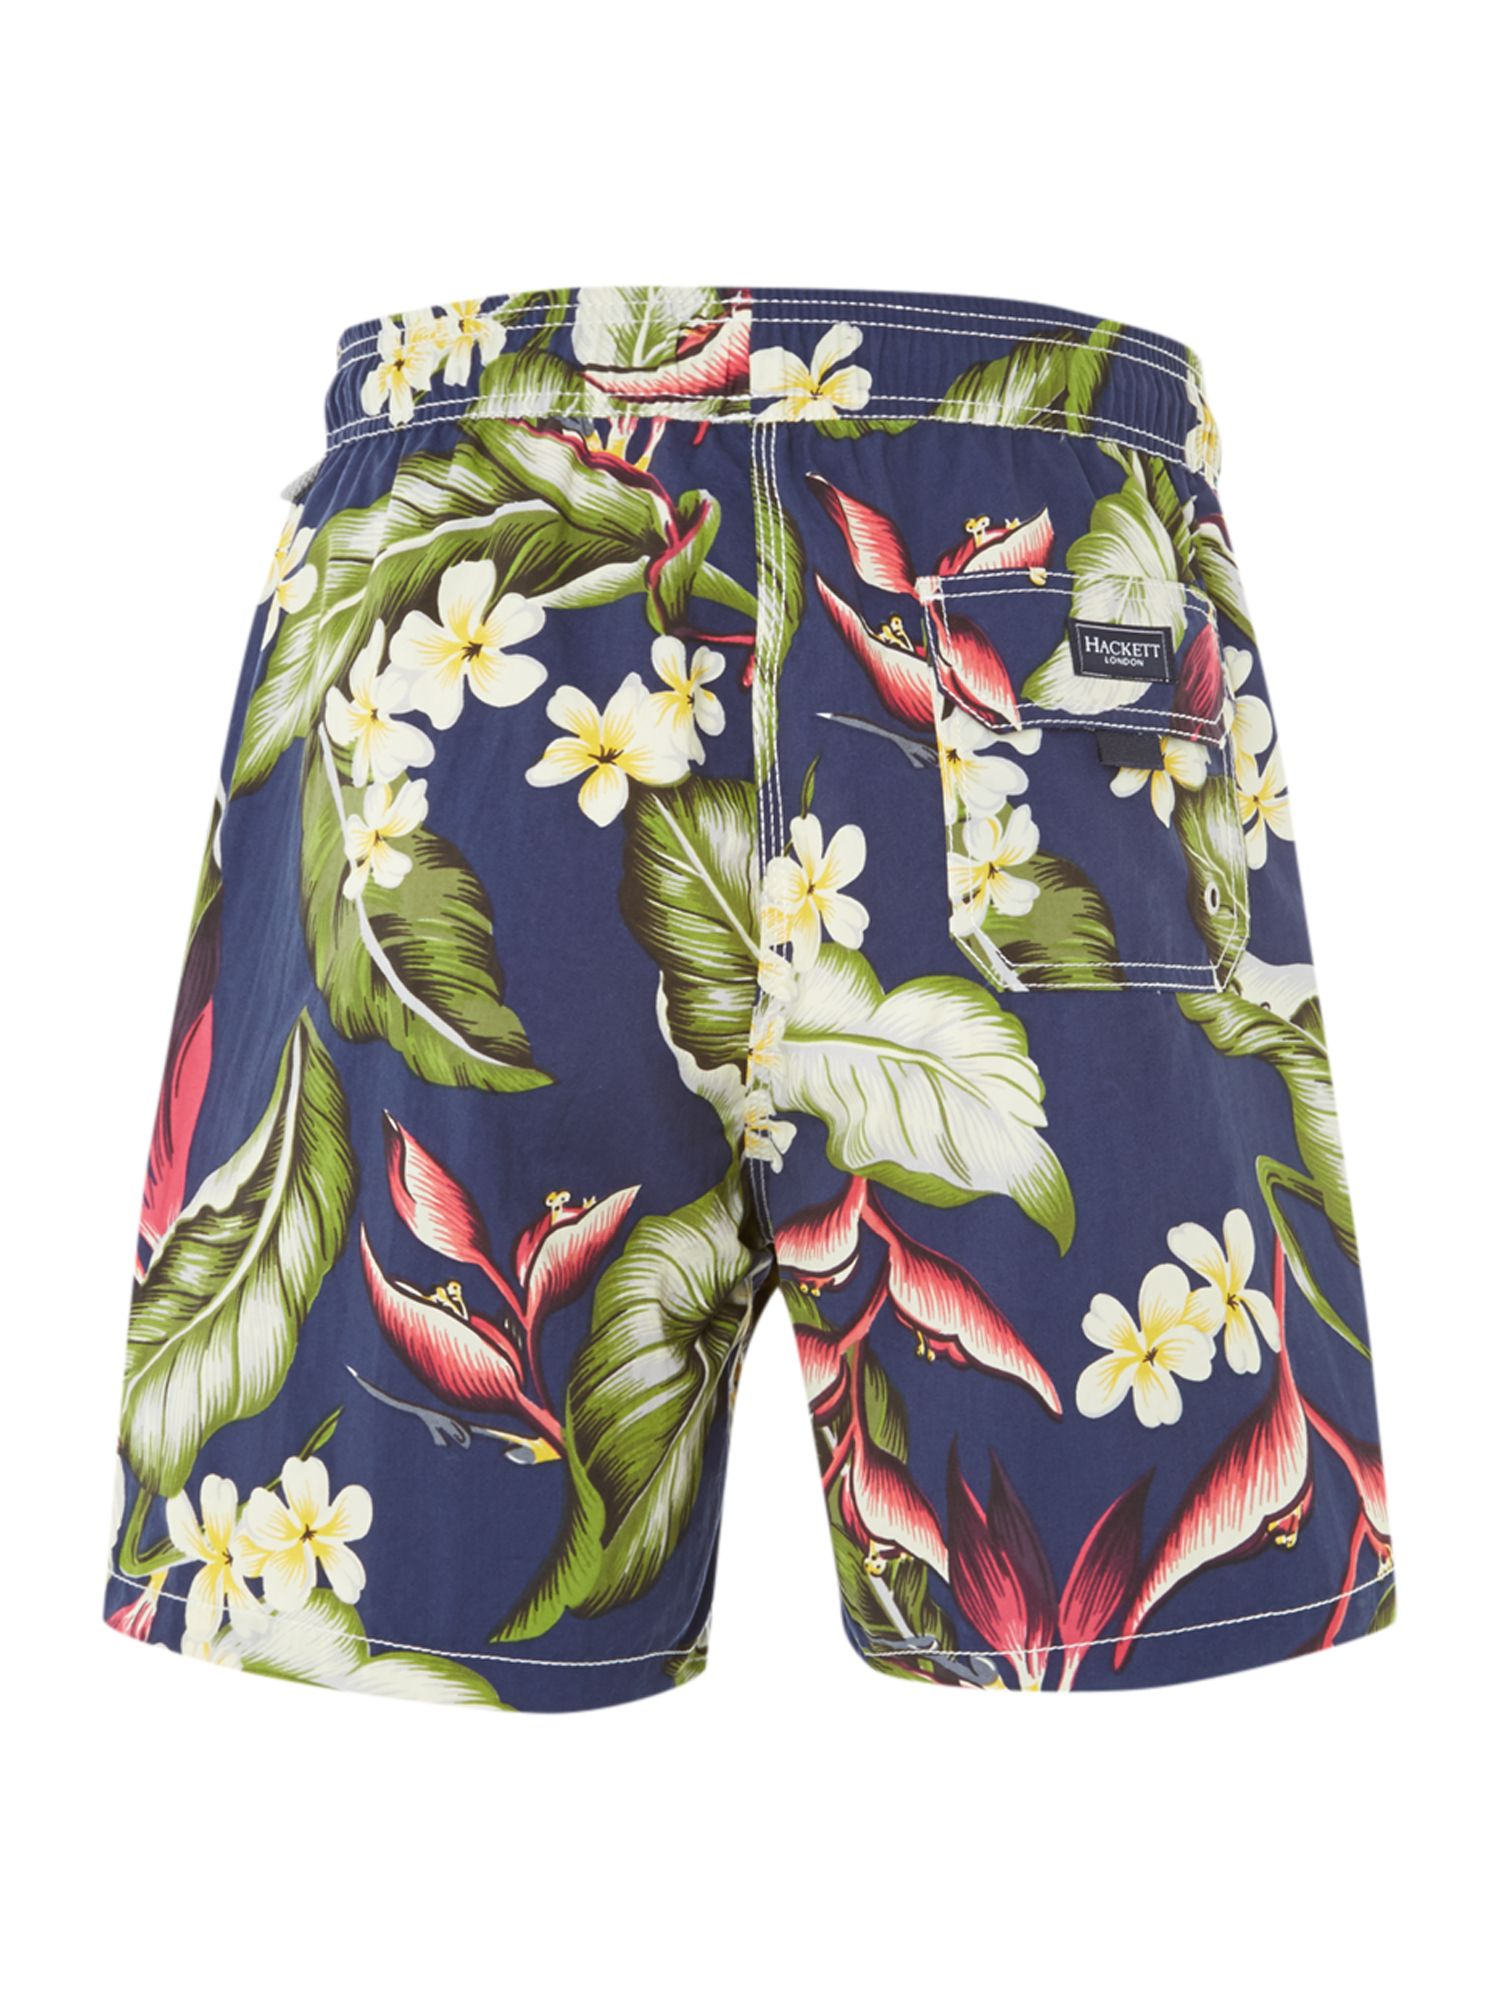 Tropic garden swim short